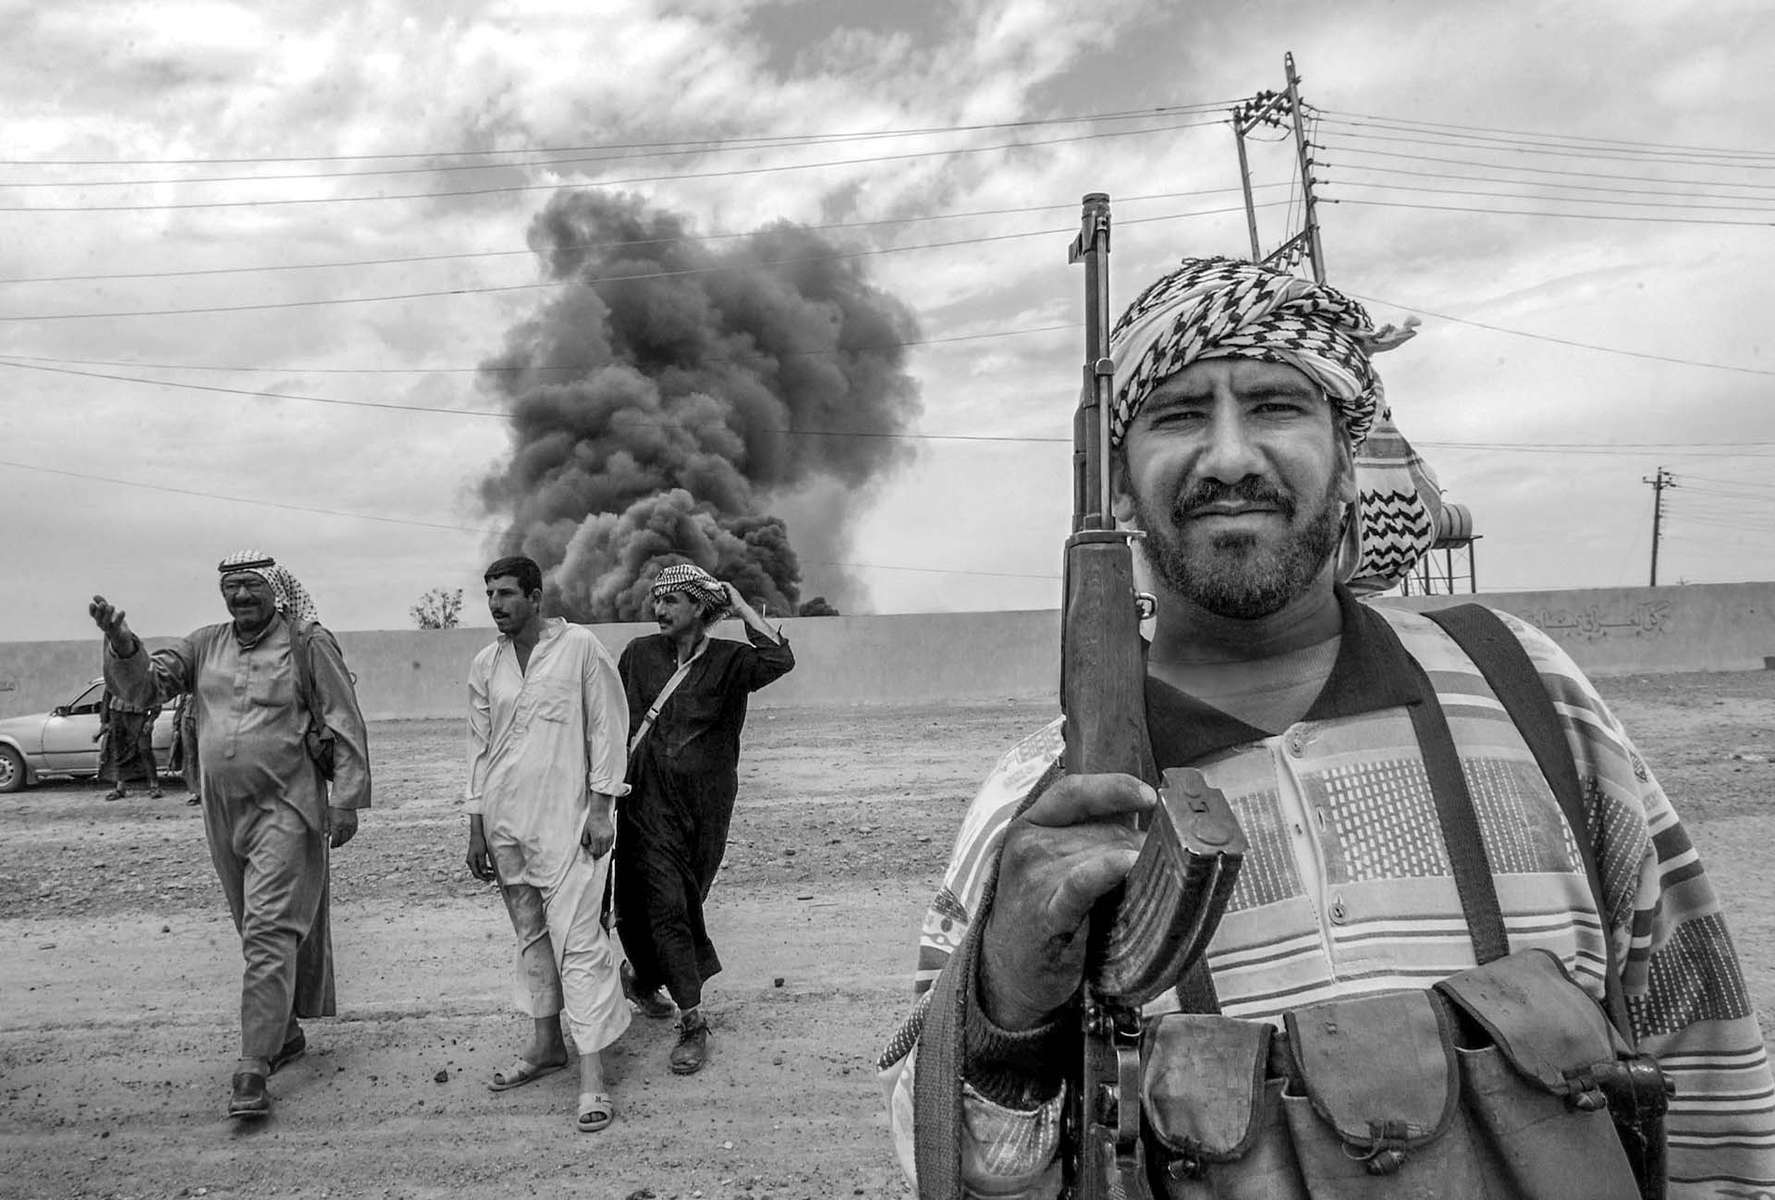 Residents of an Arab village near Kirkuk armed themselves for the protection from Kurds, afraid of retaliation when Suddan Hussein's forces left the city.